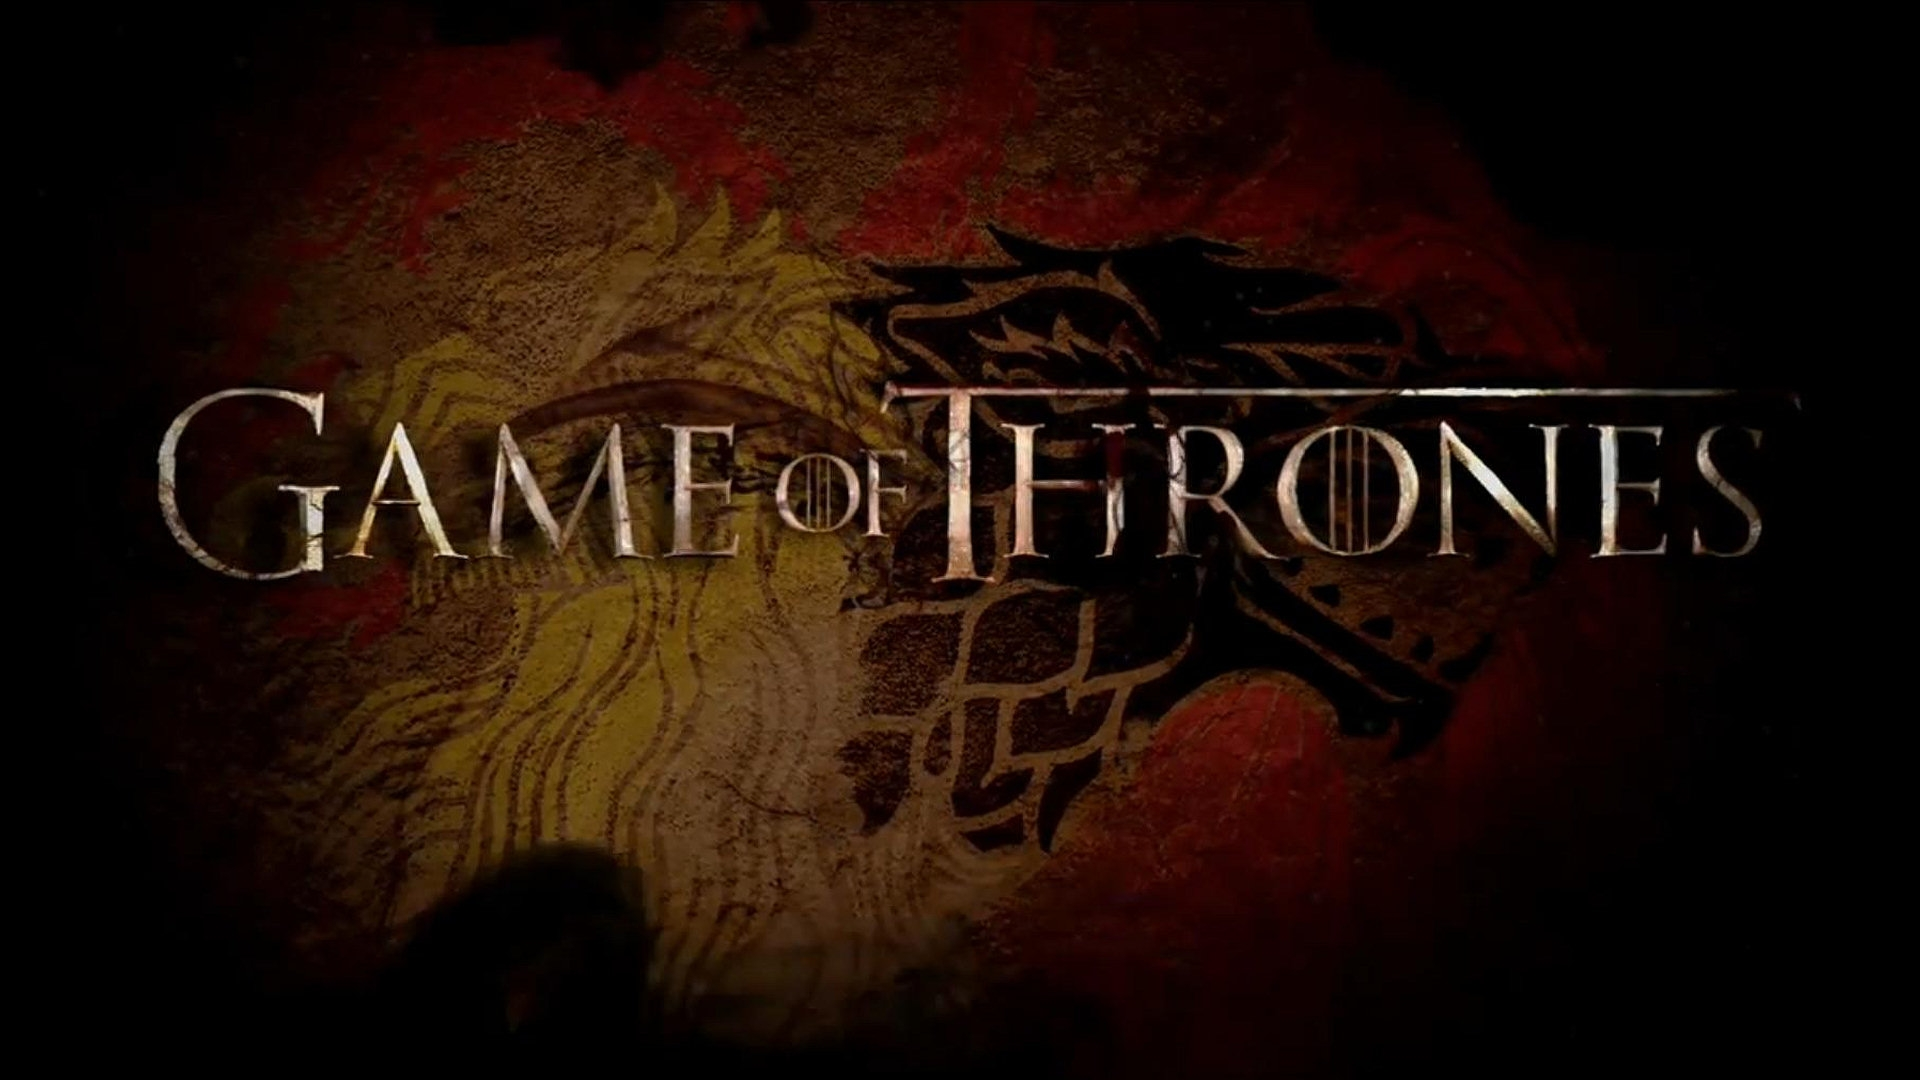 Game of Thrones   Game of Thrones Wallpaper 1920x1080 29642 1920x1080